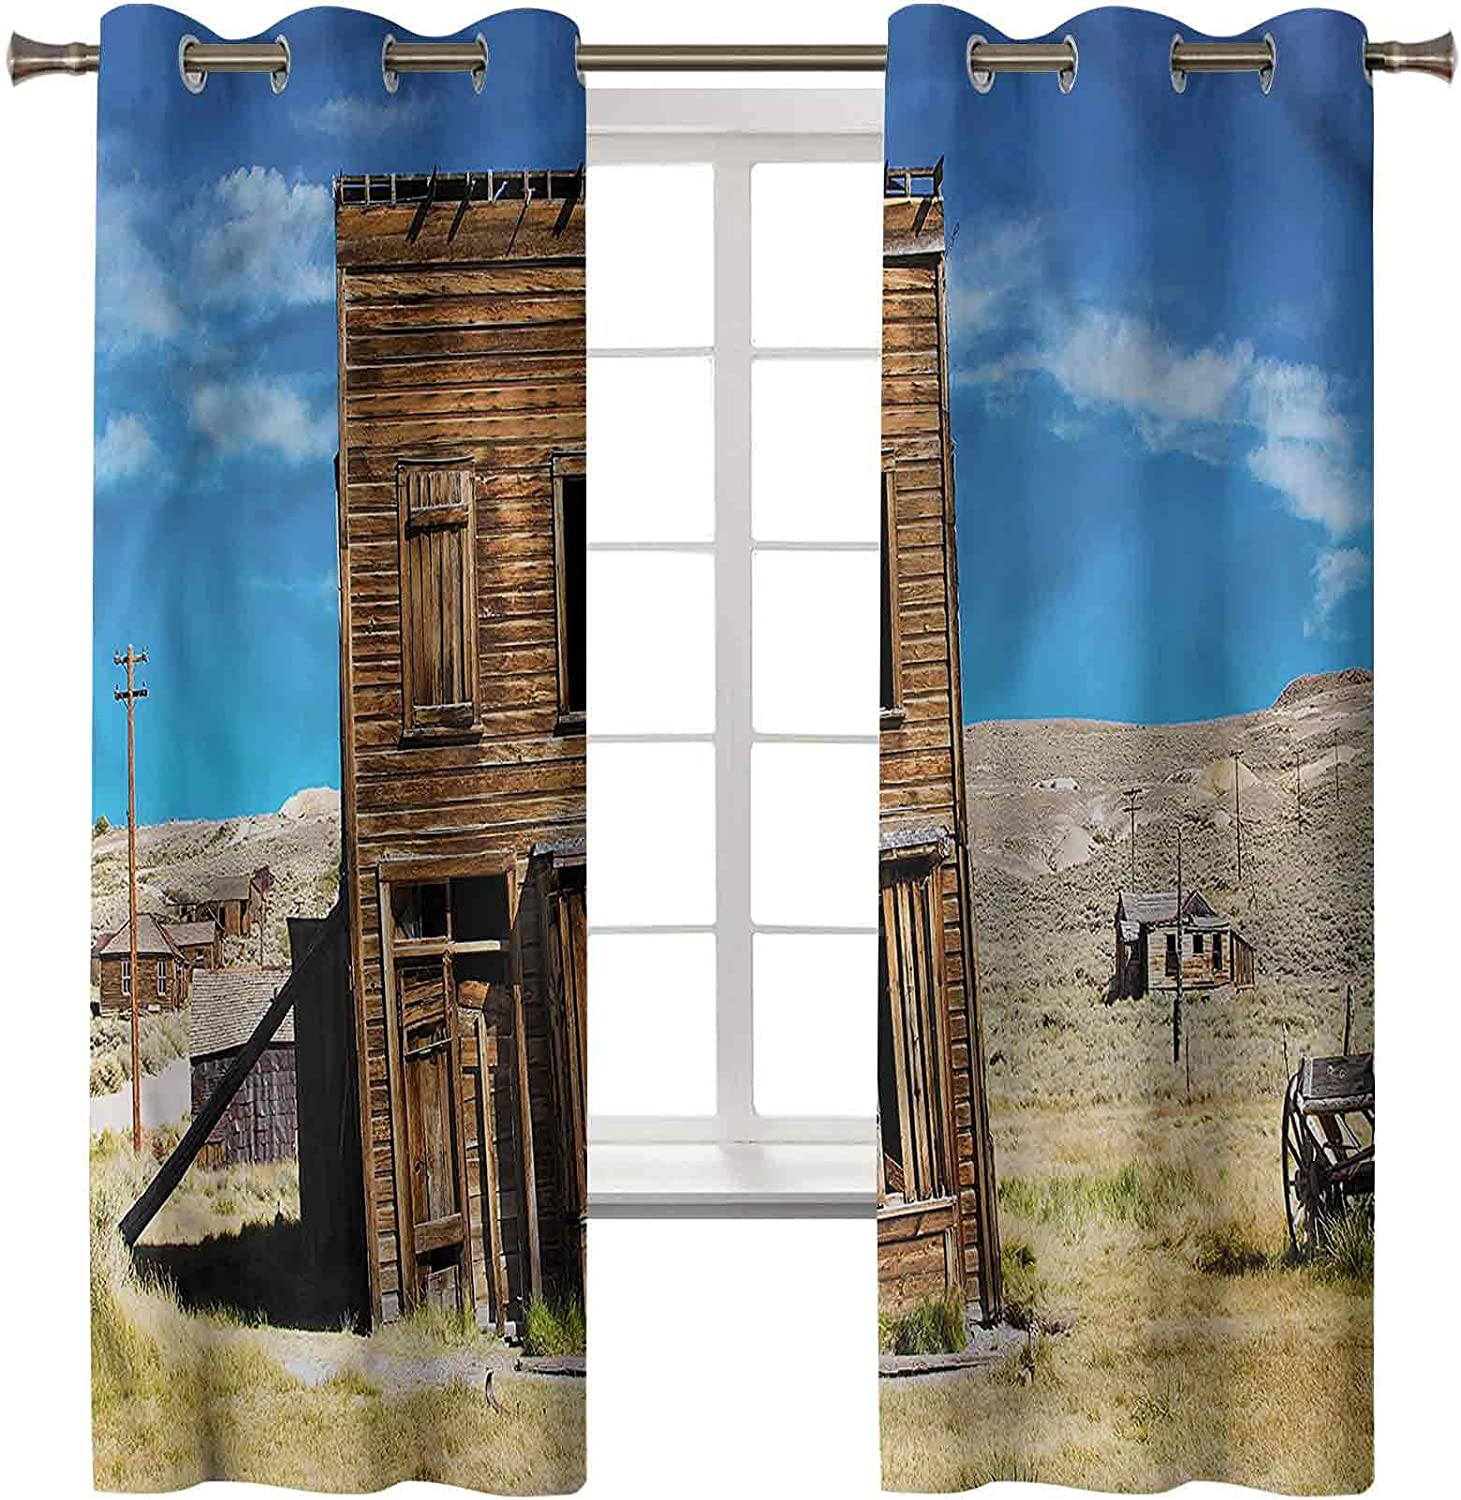 Inexpensive Blackout Curtains Window Treatment Rustic Tim Insulated Thermal Kansas City Mall